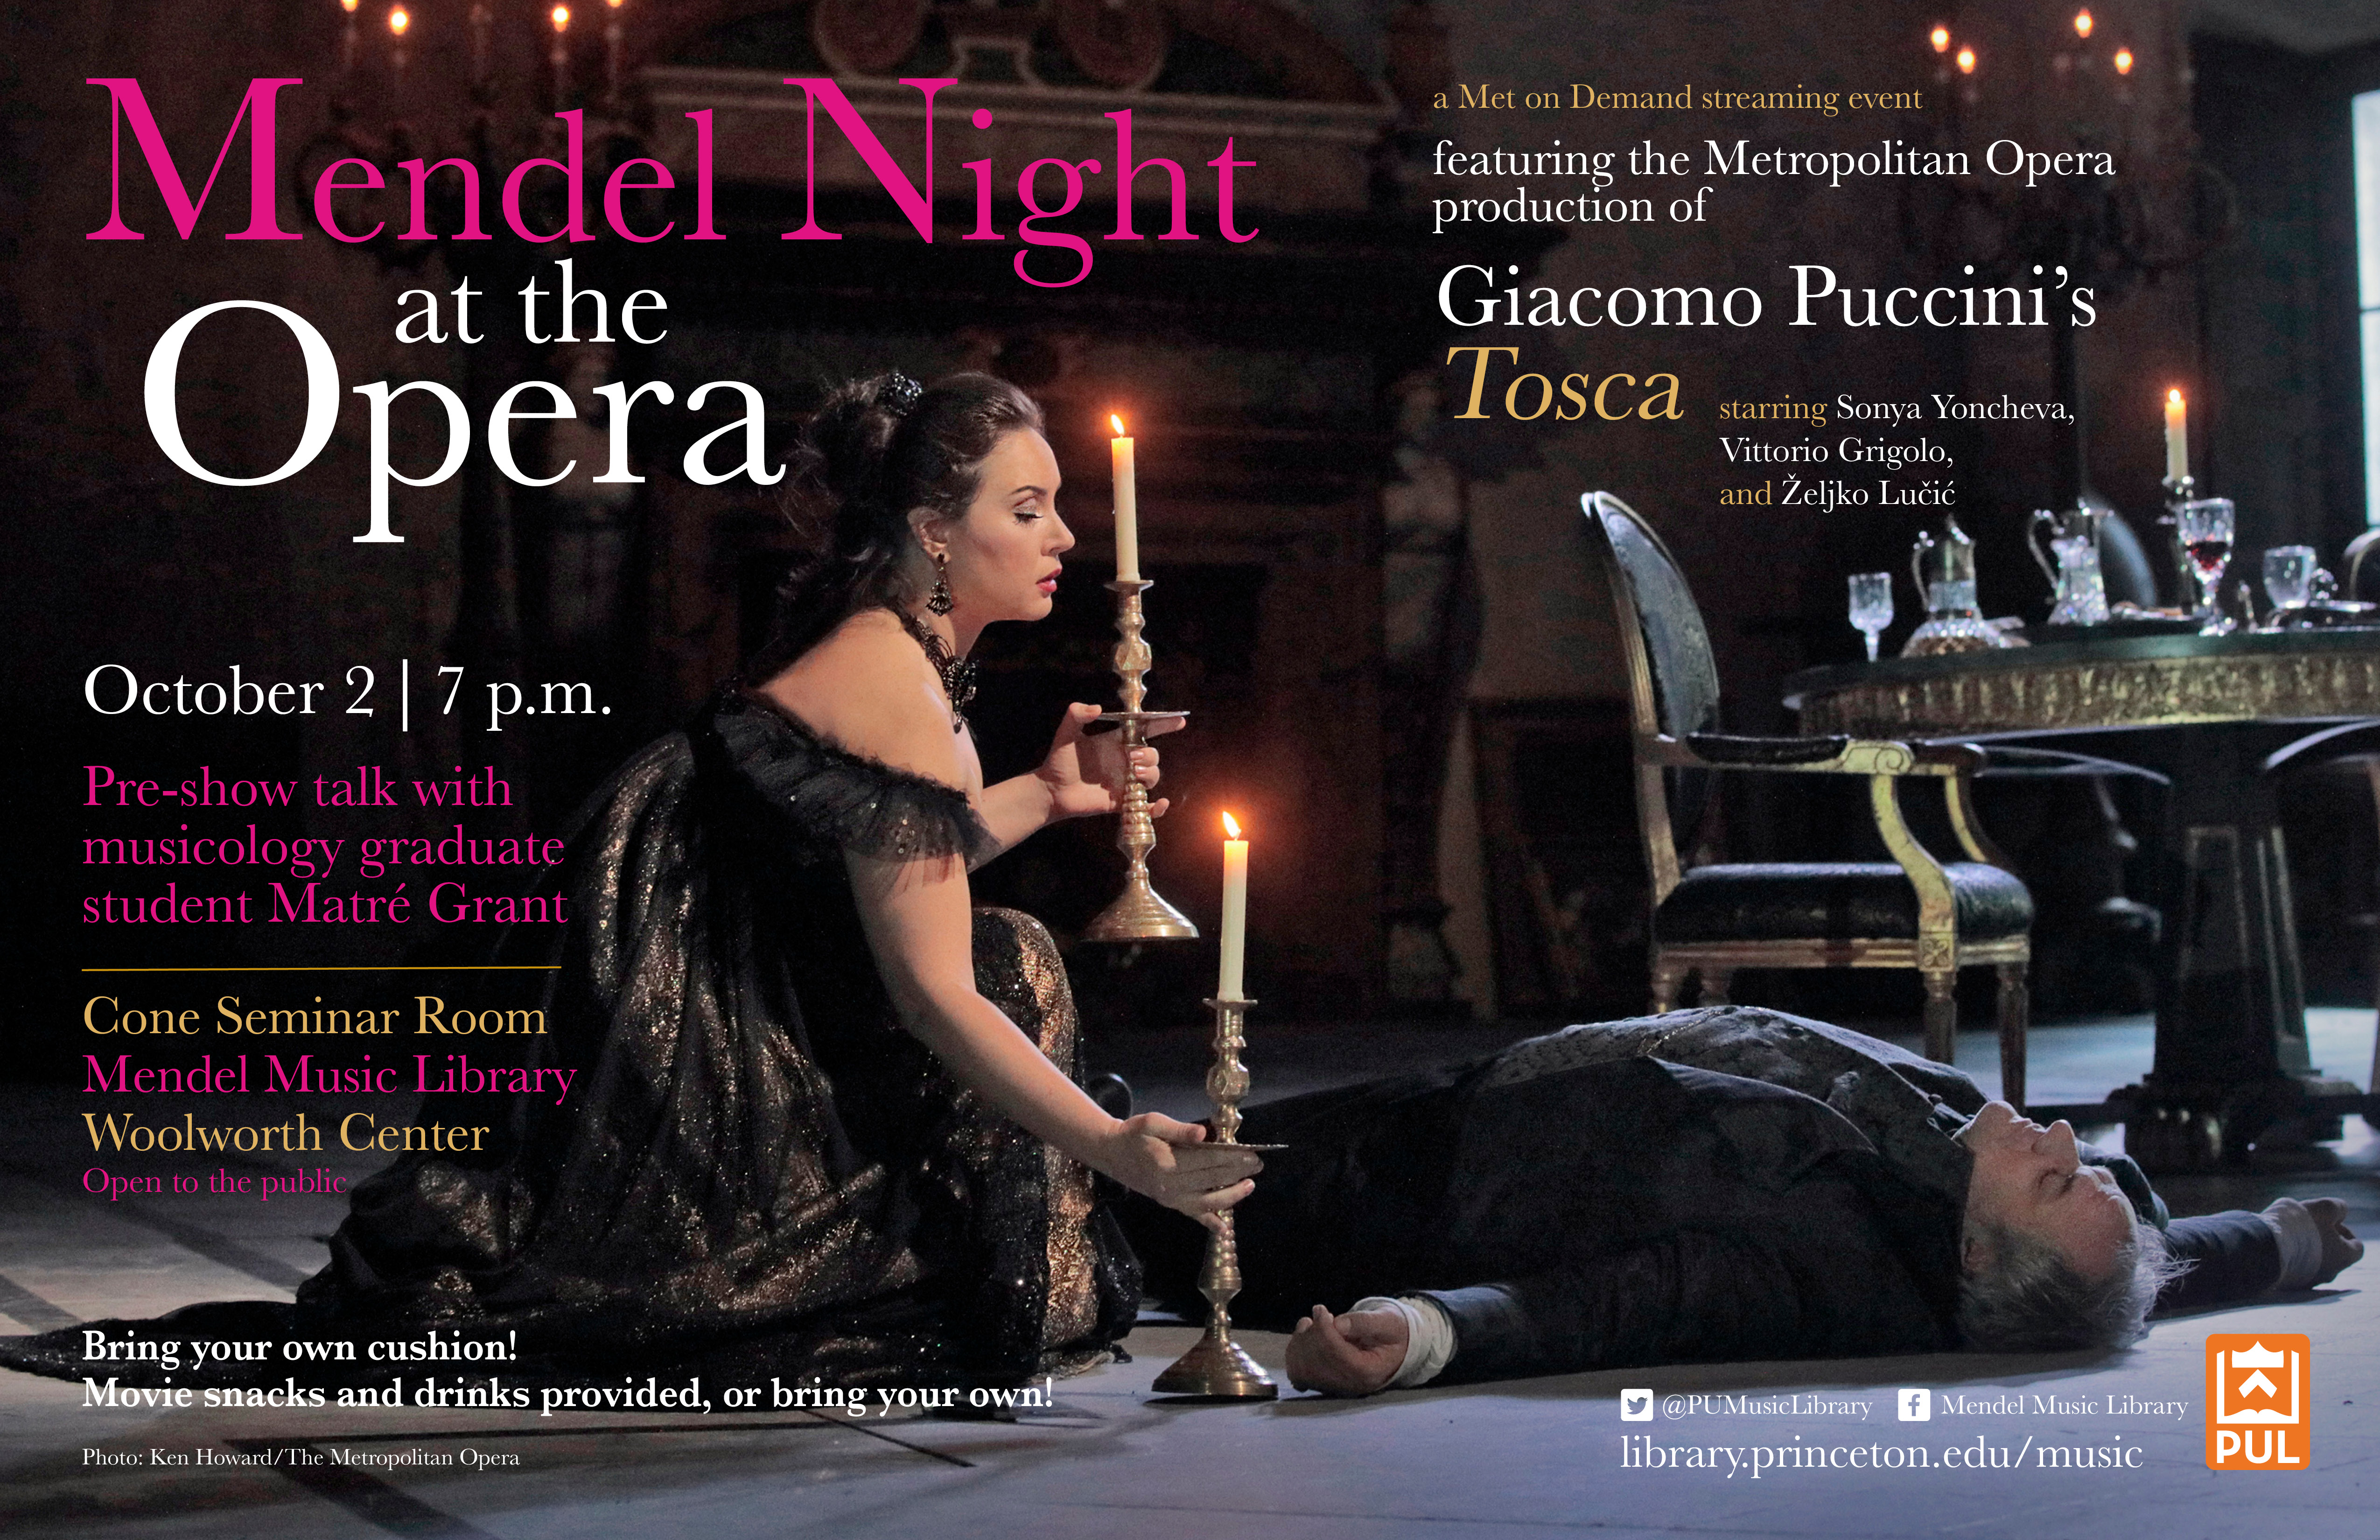 Mendel Night at the Opera, Poster